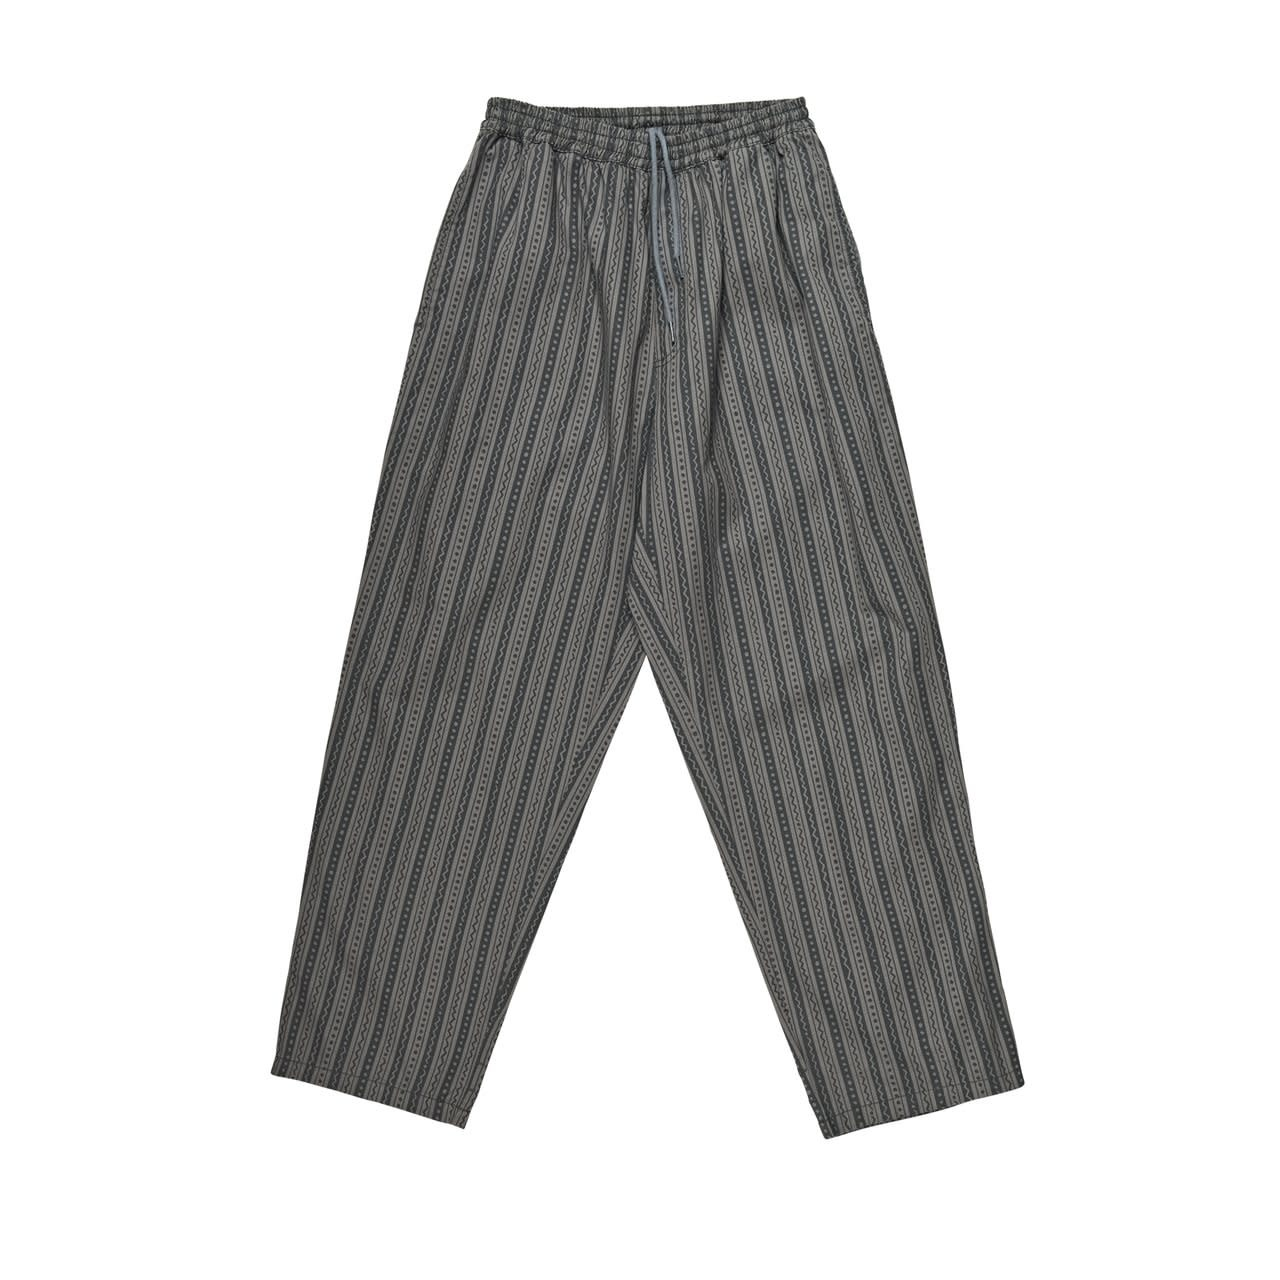 Polar Skate Co. Wavy Surf Pants Grey